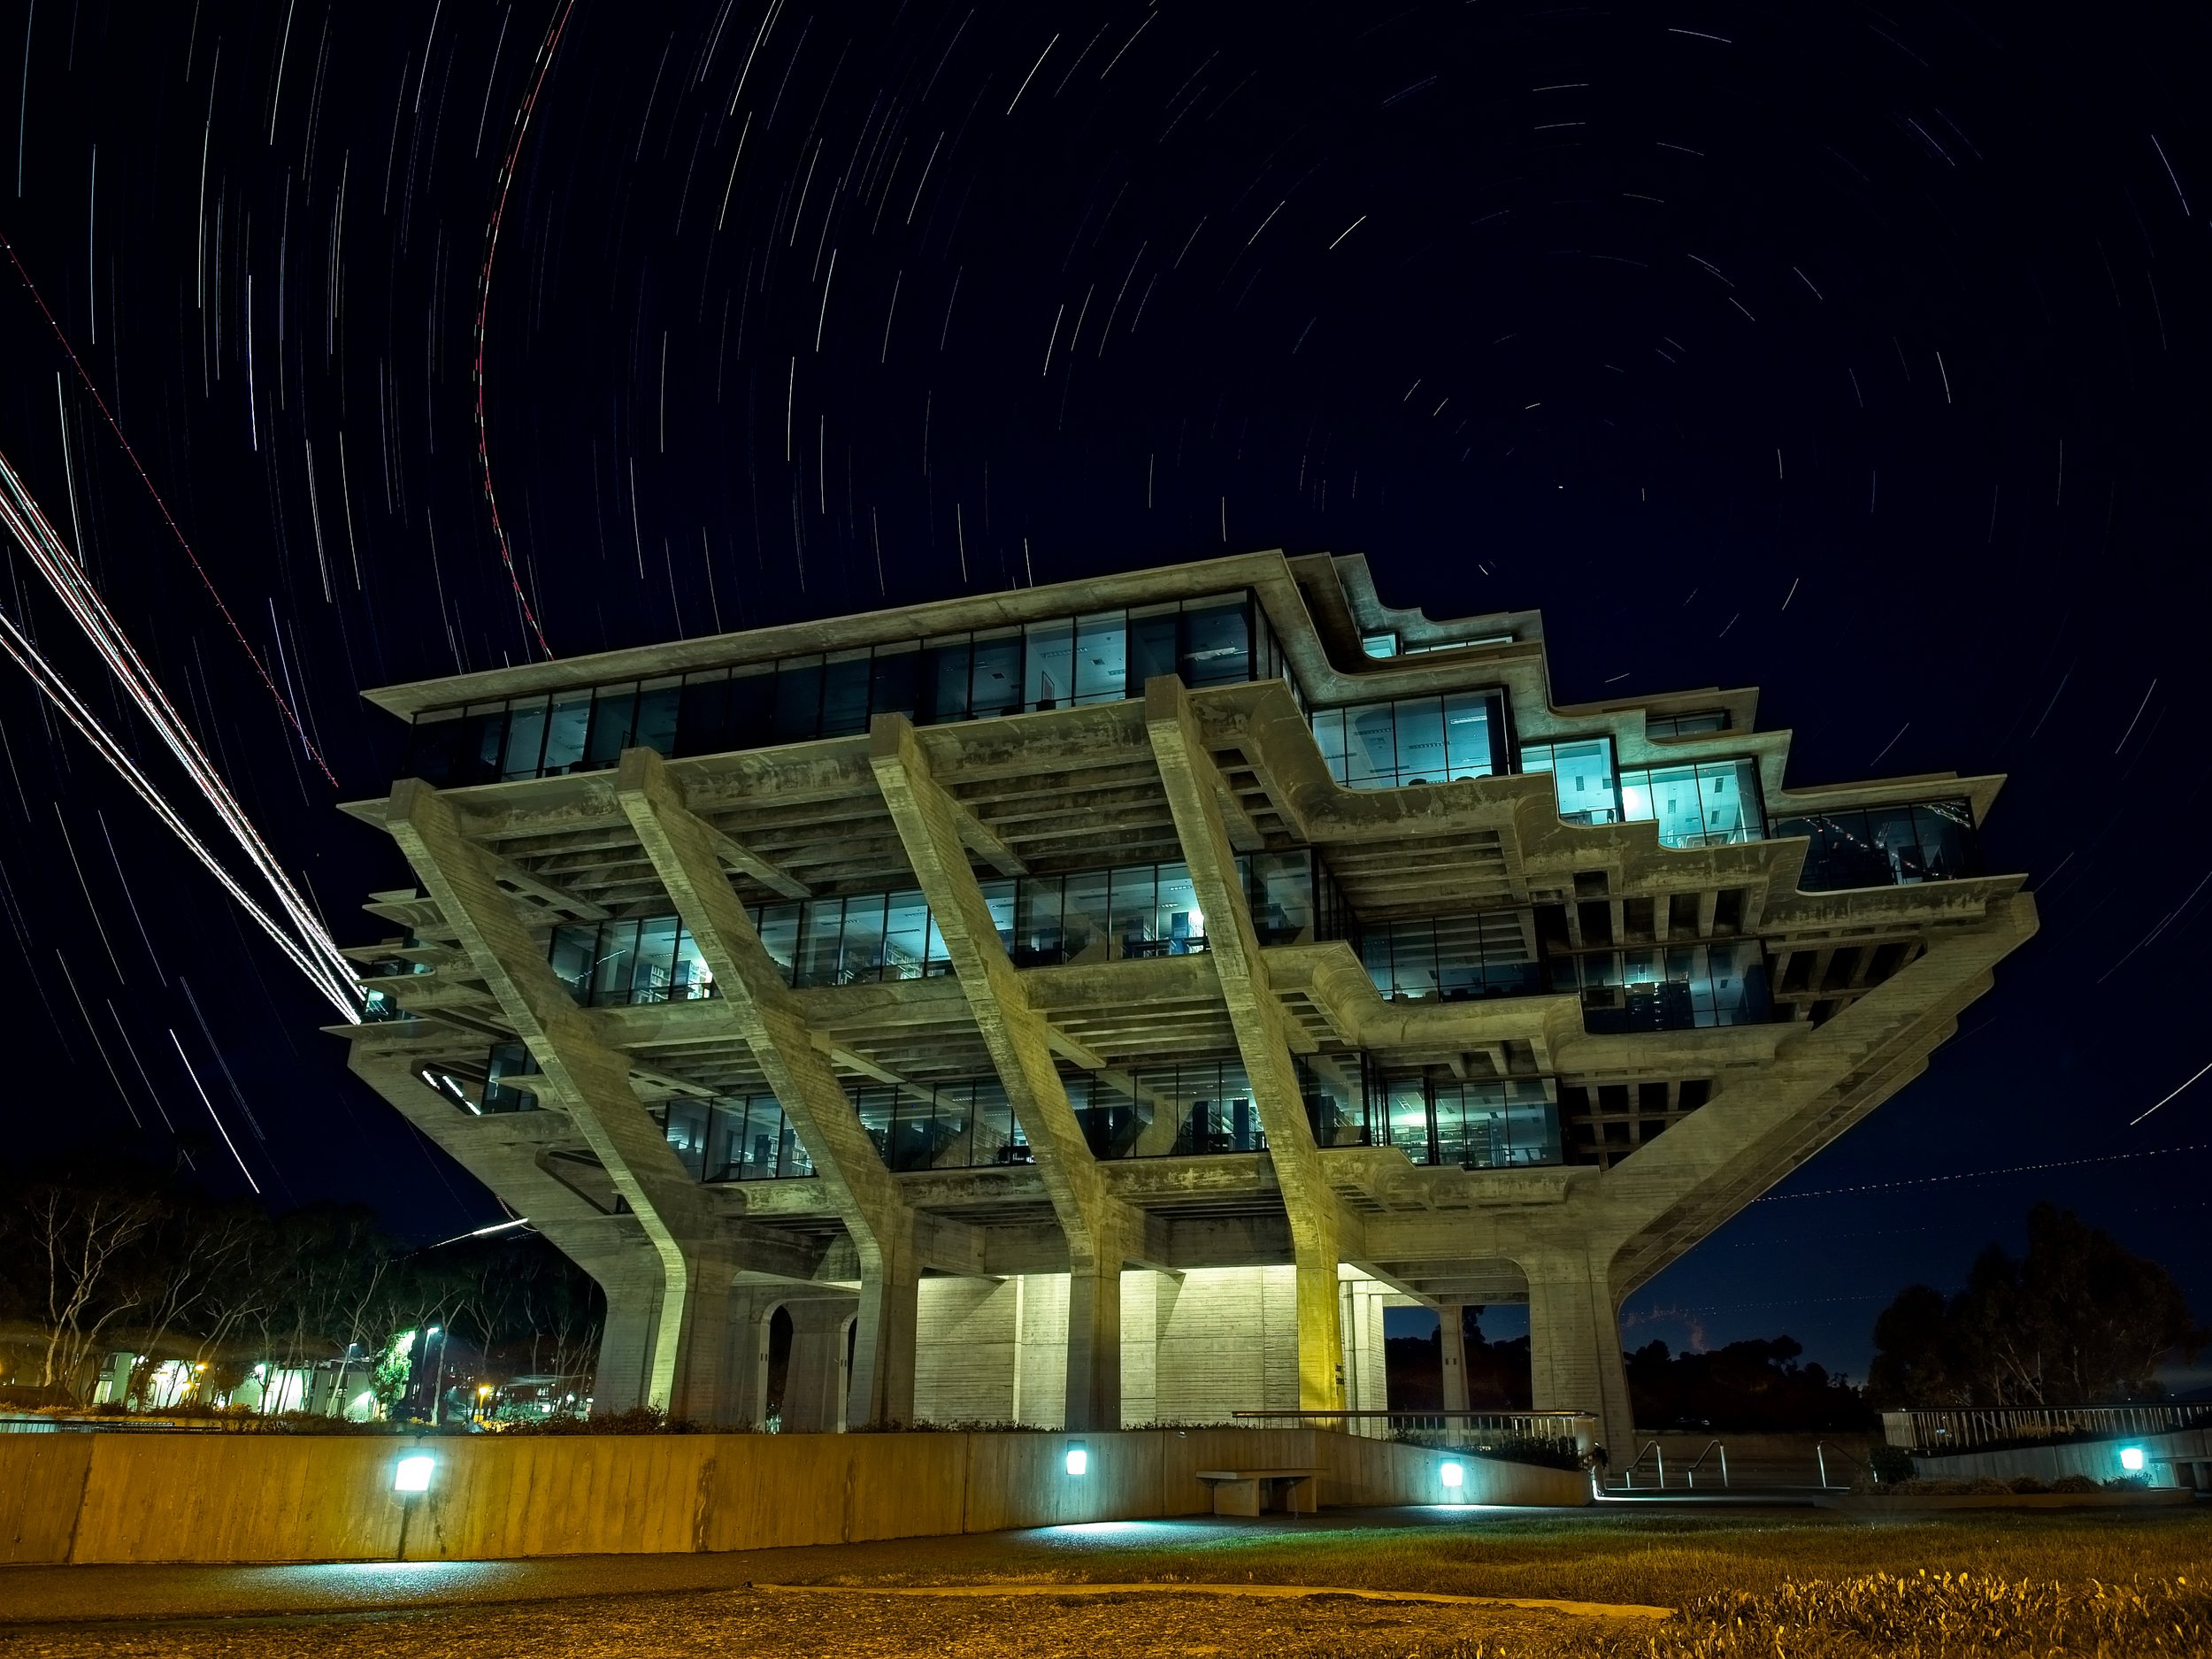 Star trails and airplane landing lights make the Geisel Library even more unique